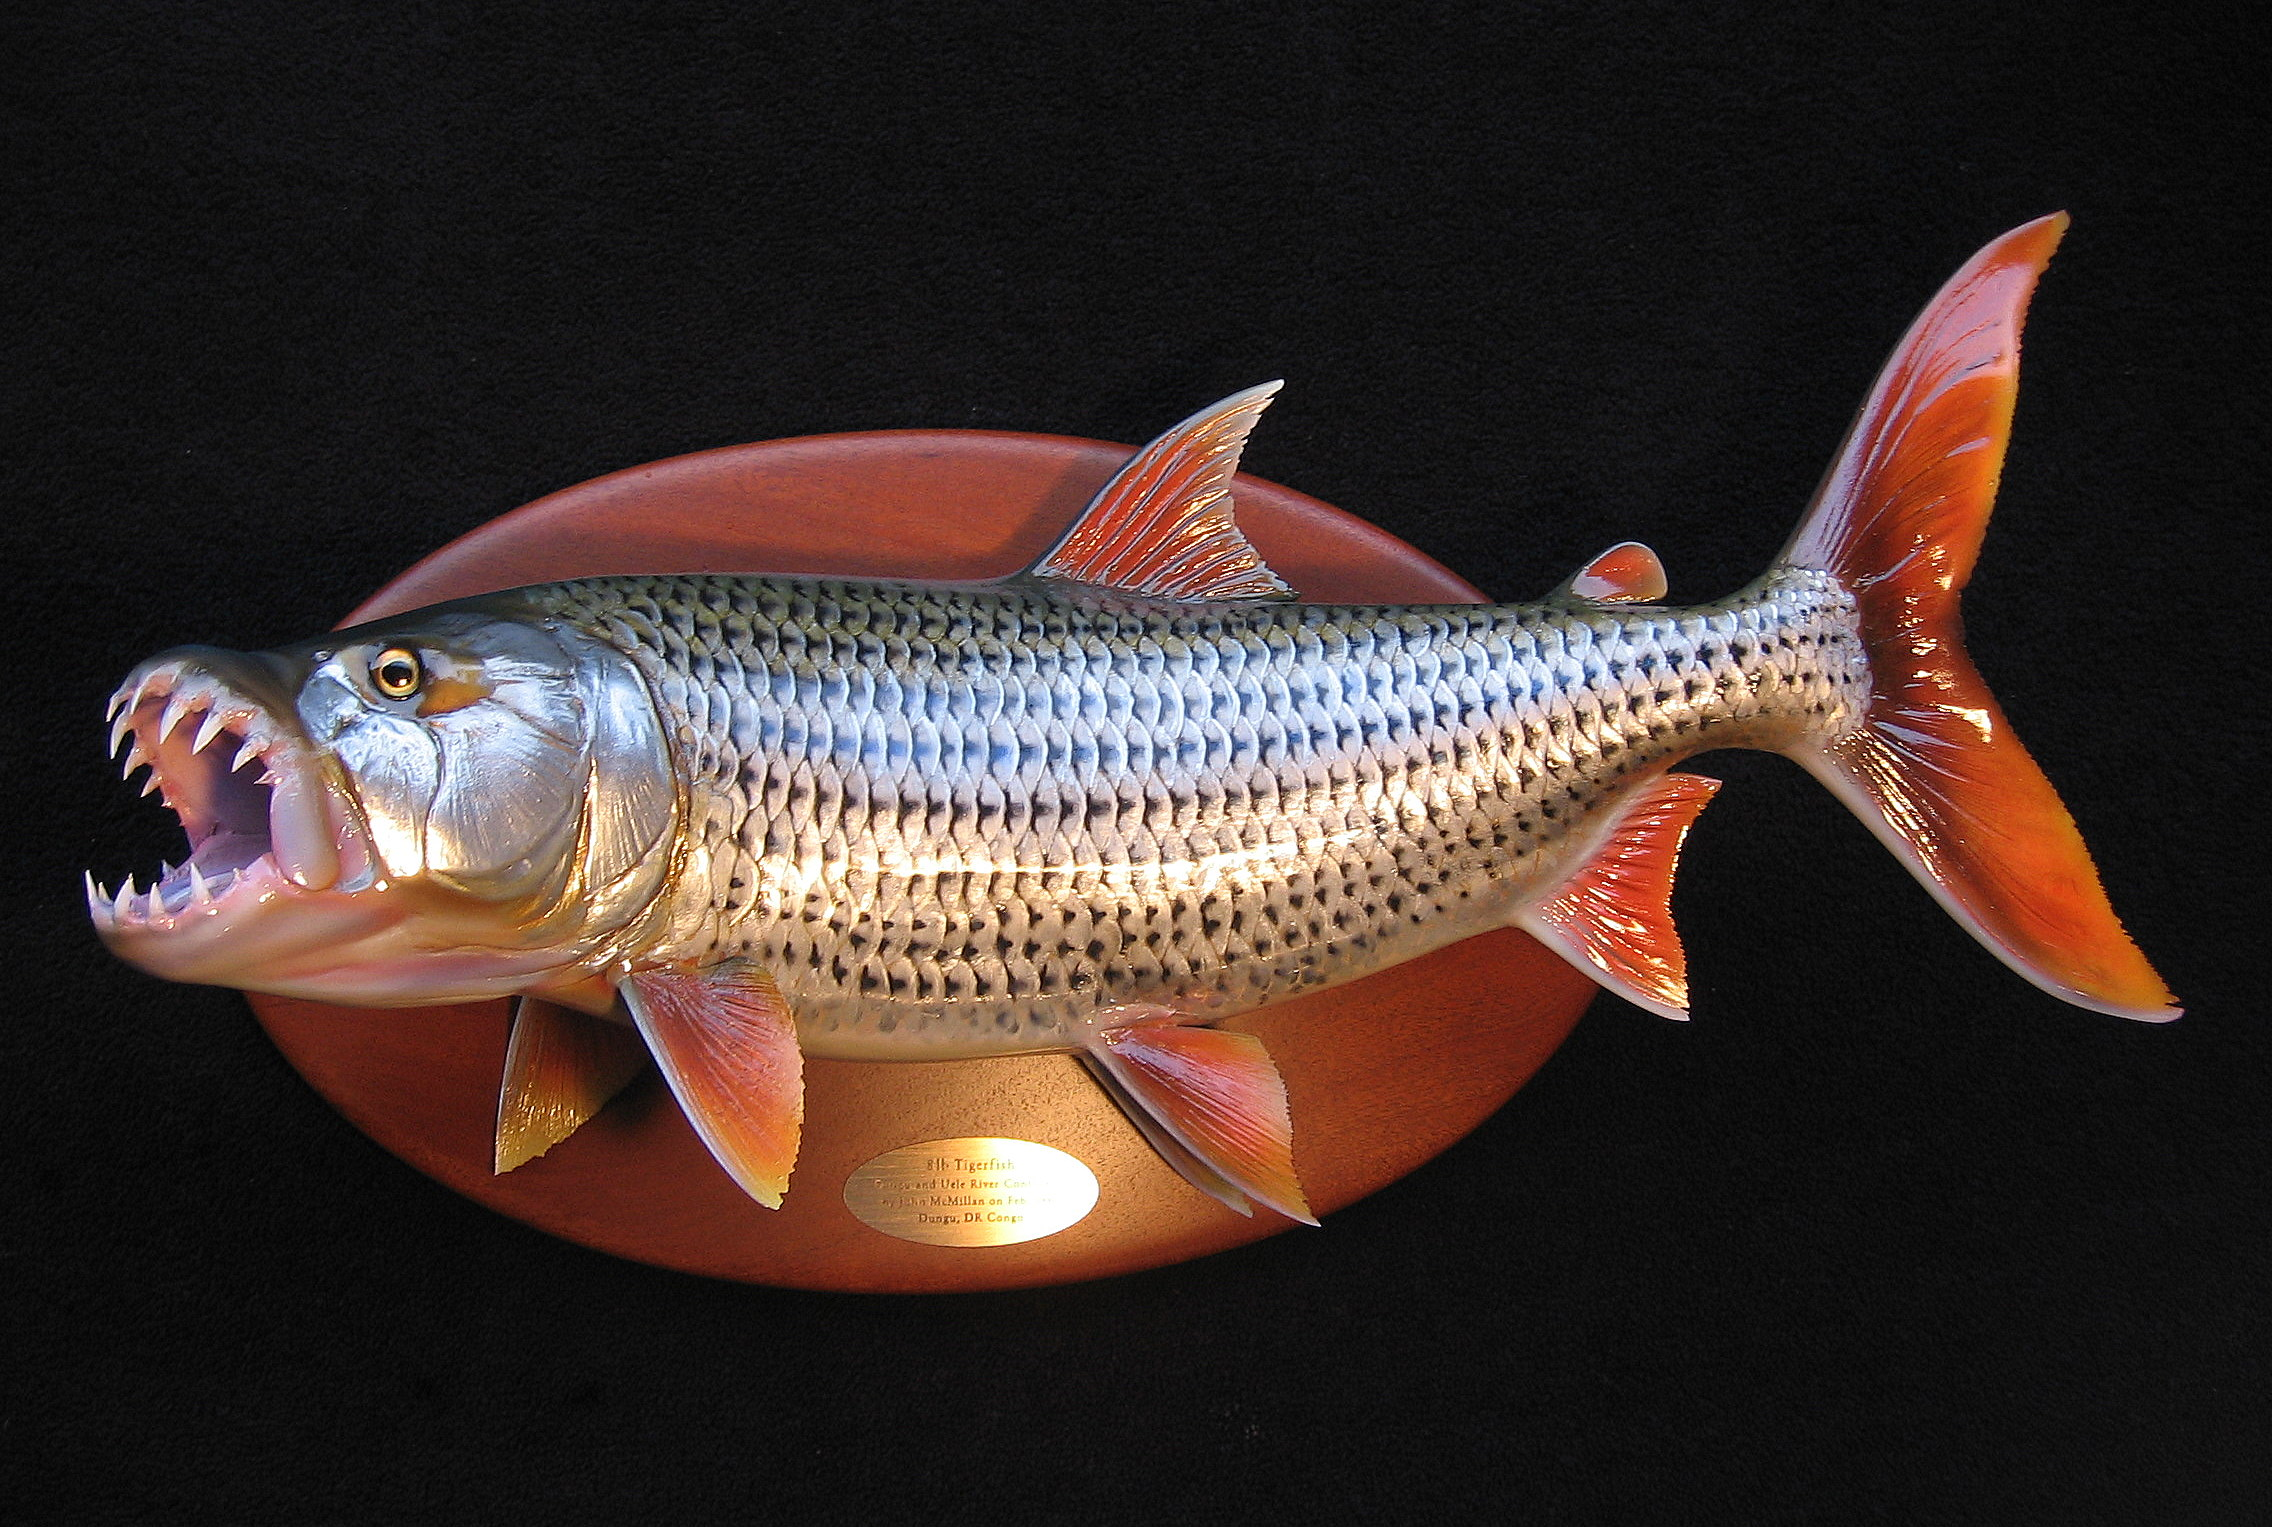 African Tiger Fish Replica featured on African Mahogany